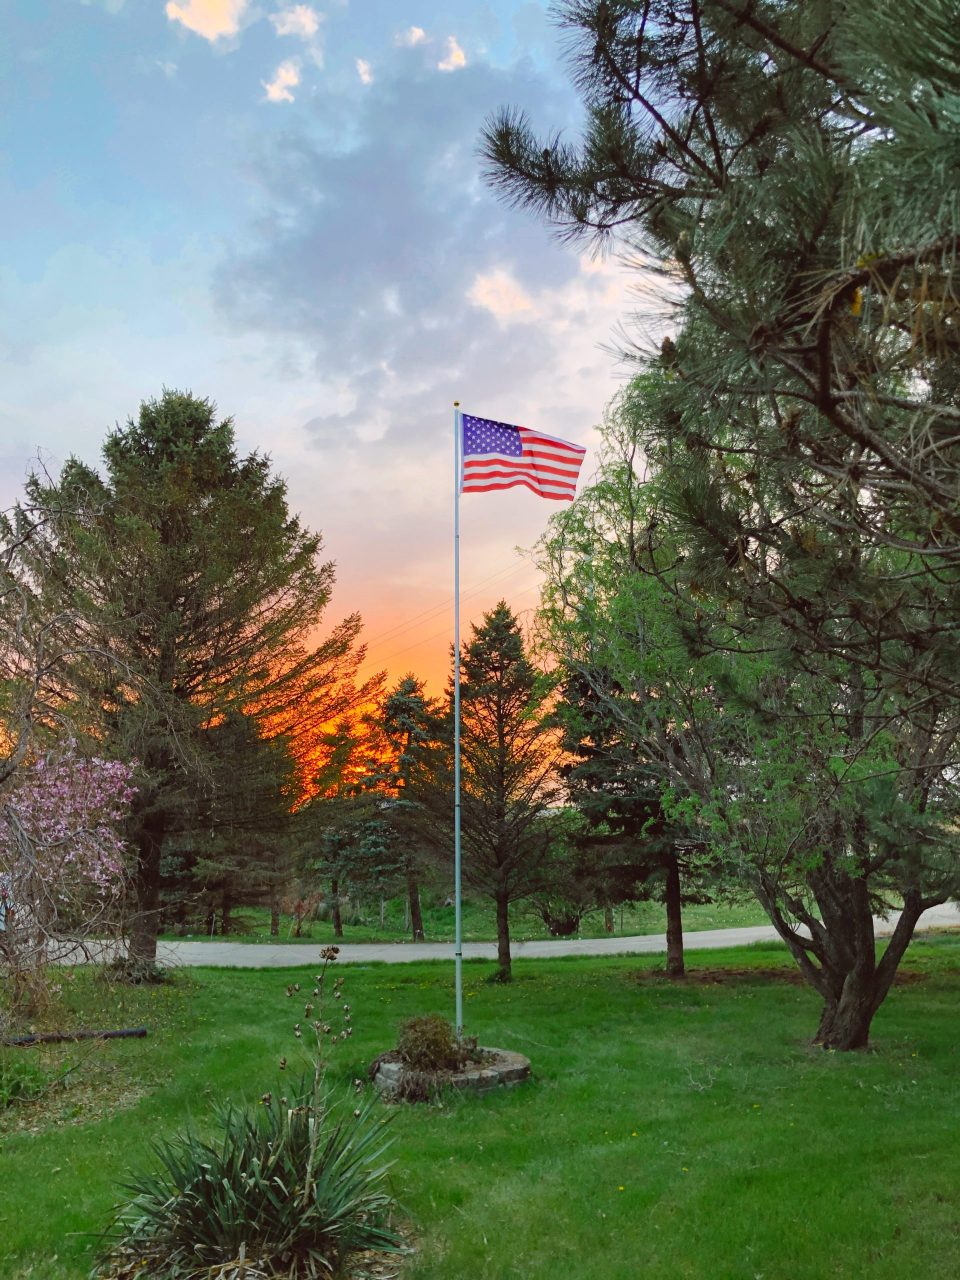 american flag waving in the sunset